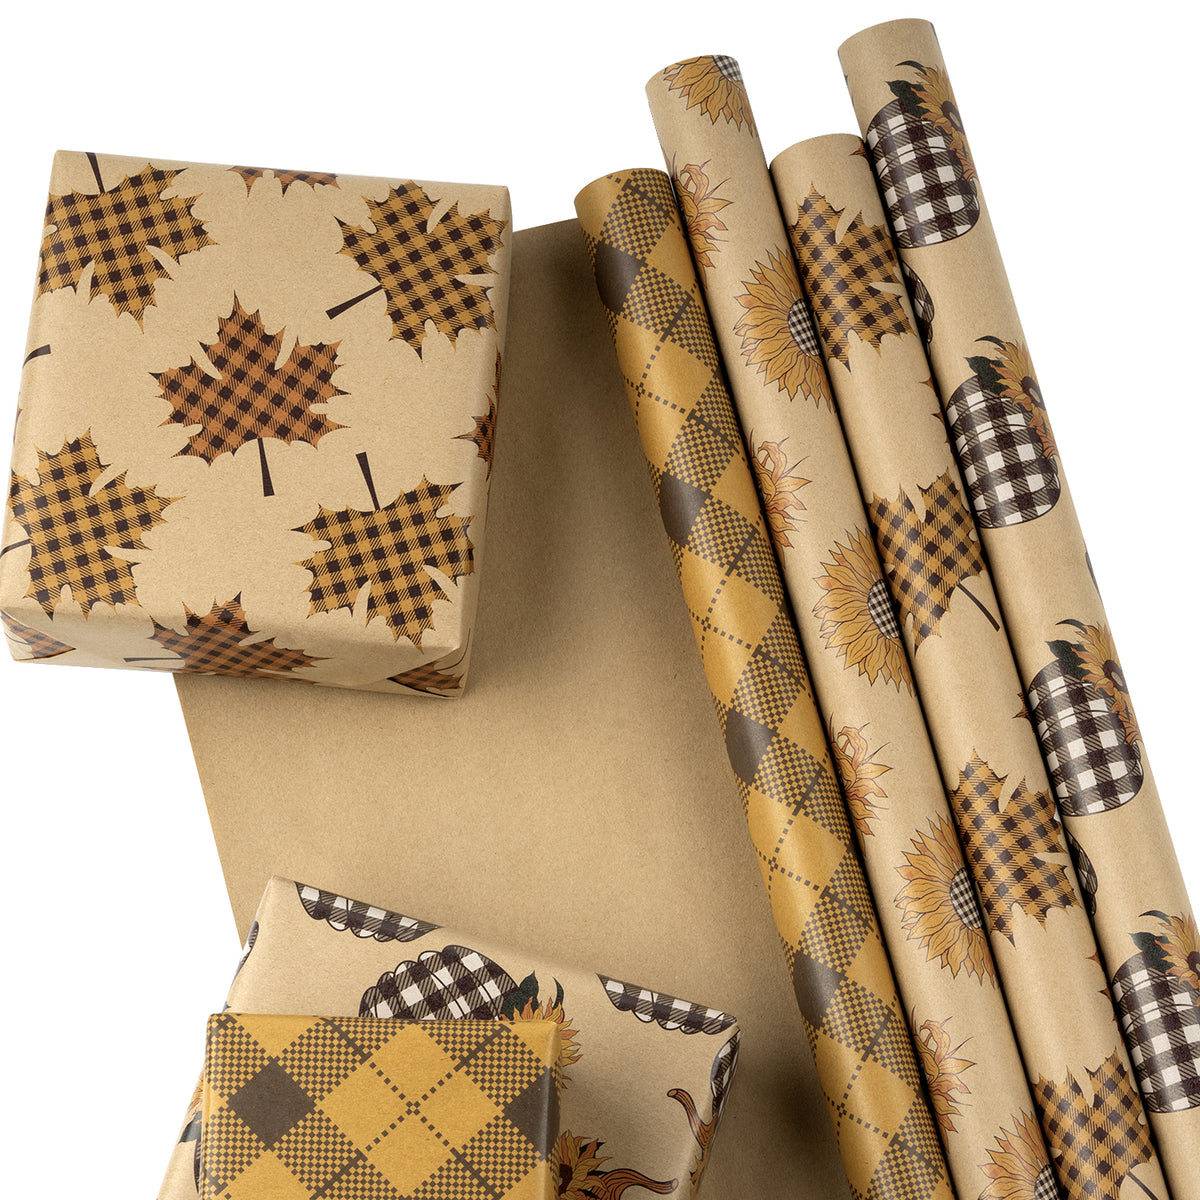 Wrapaholic-Maple-Leaf-Fall-Season-Wrapping-Paper-Sheets-2